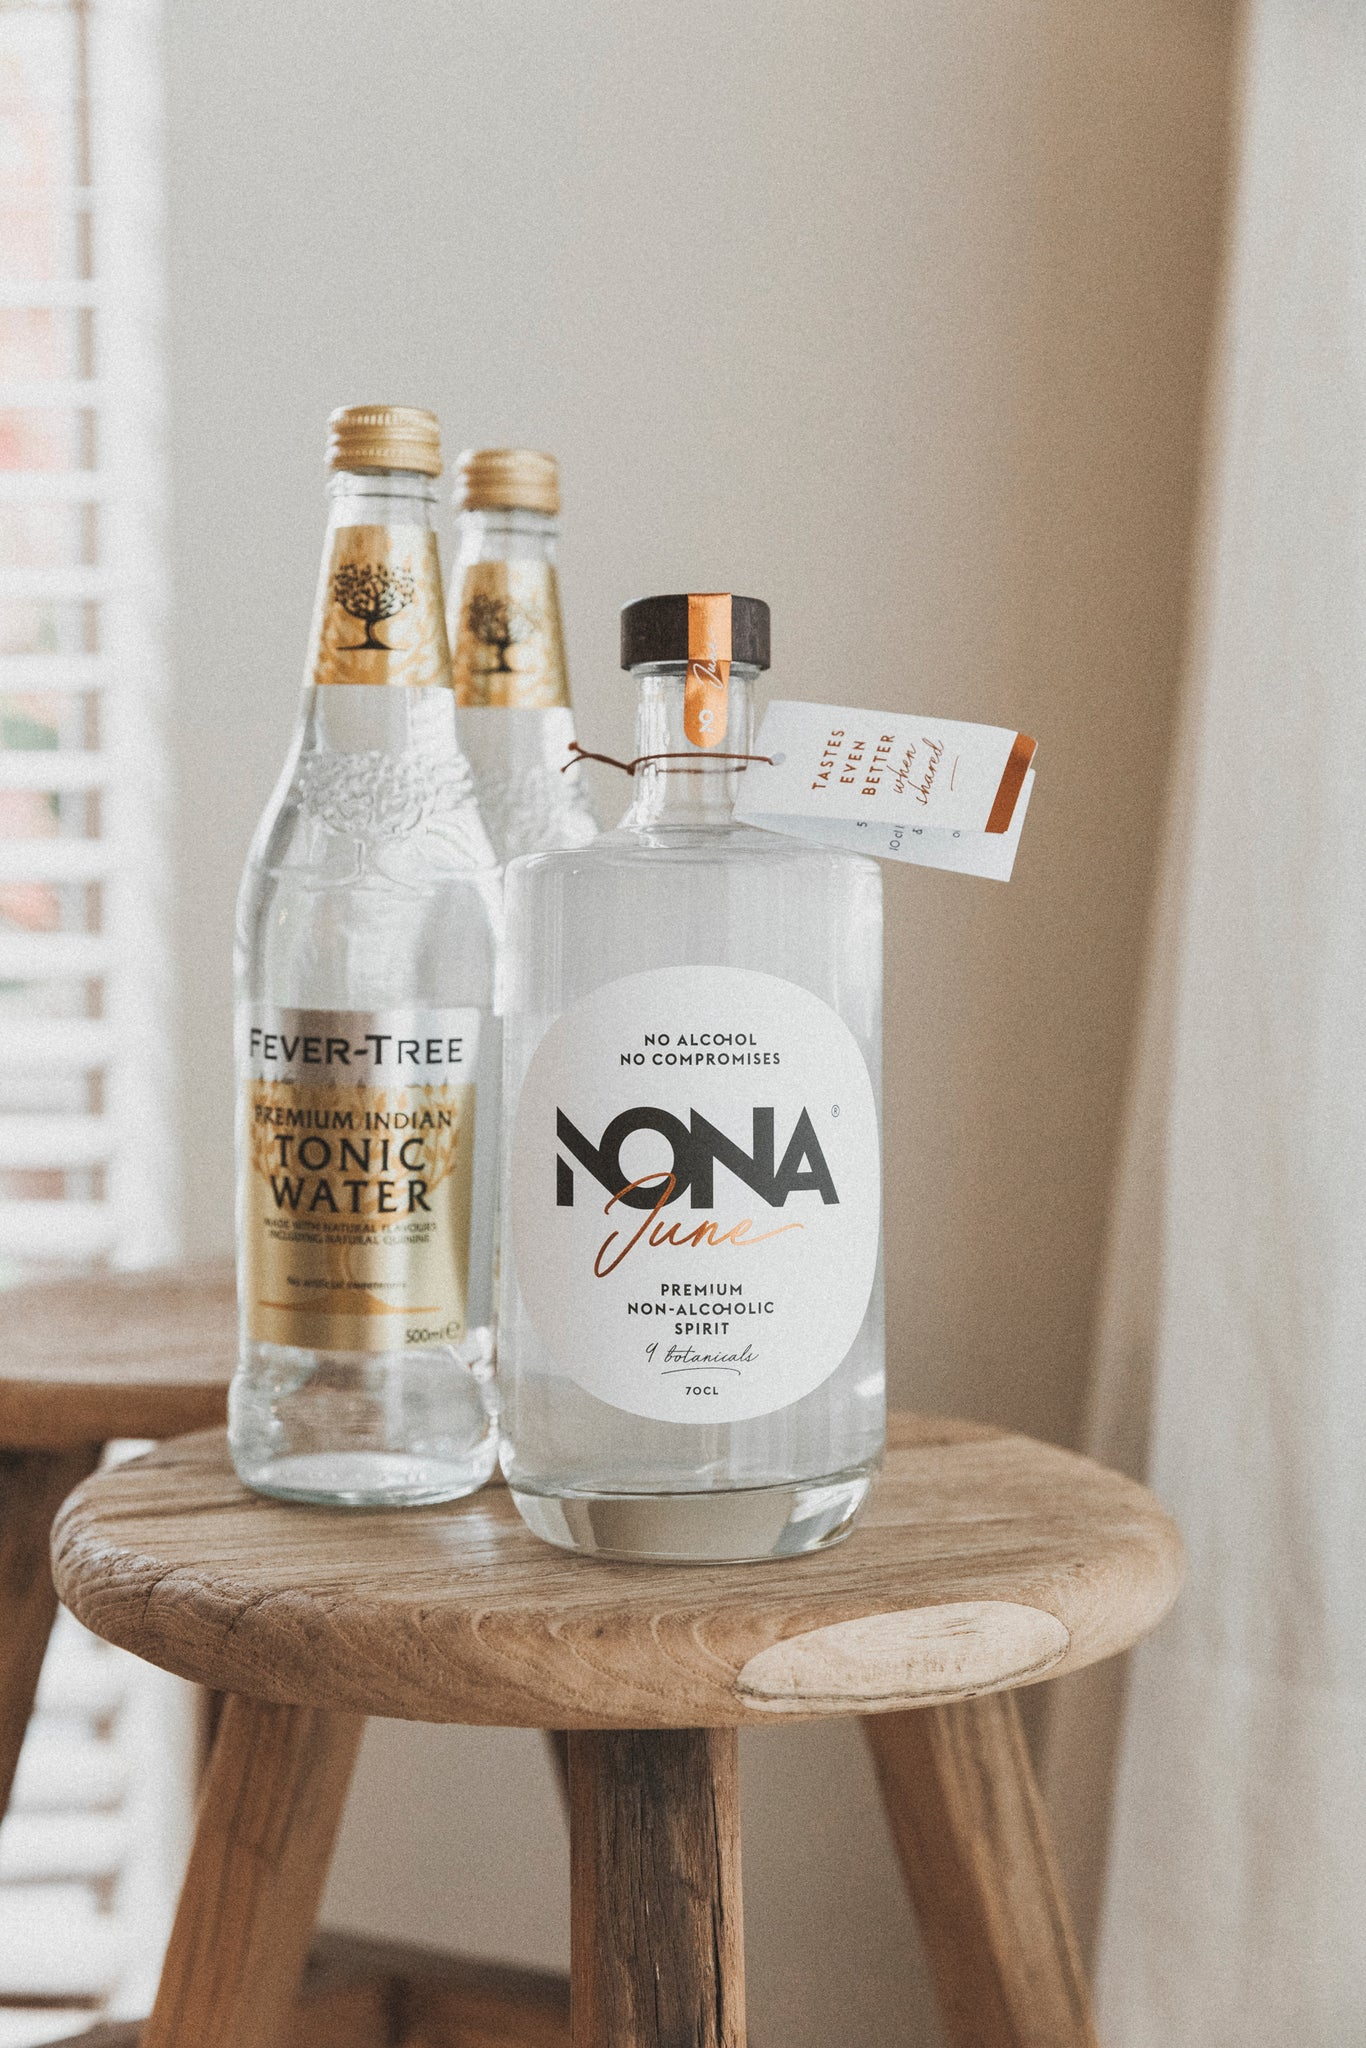 NONA June + 2 x Indian tonic 50cL